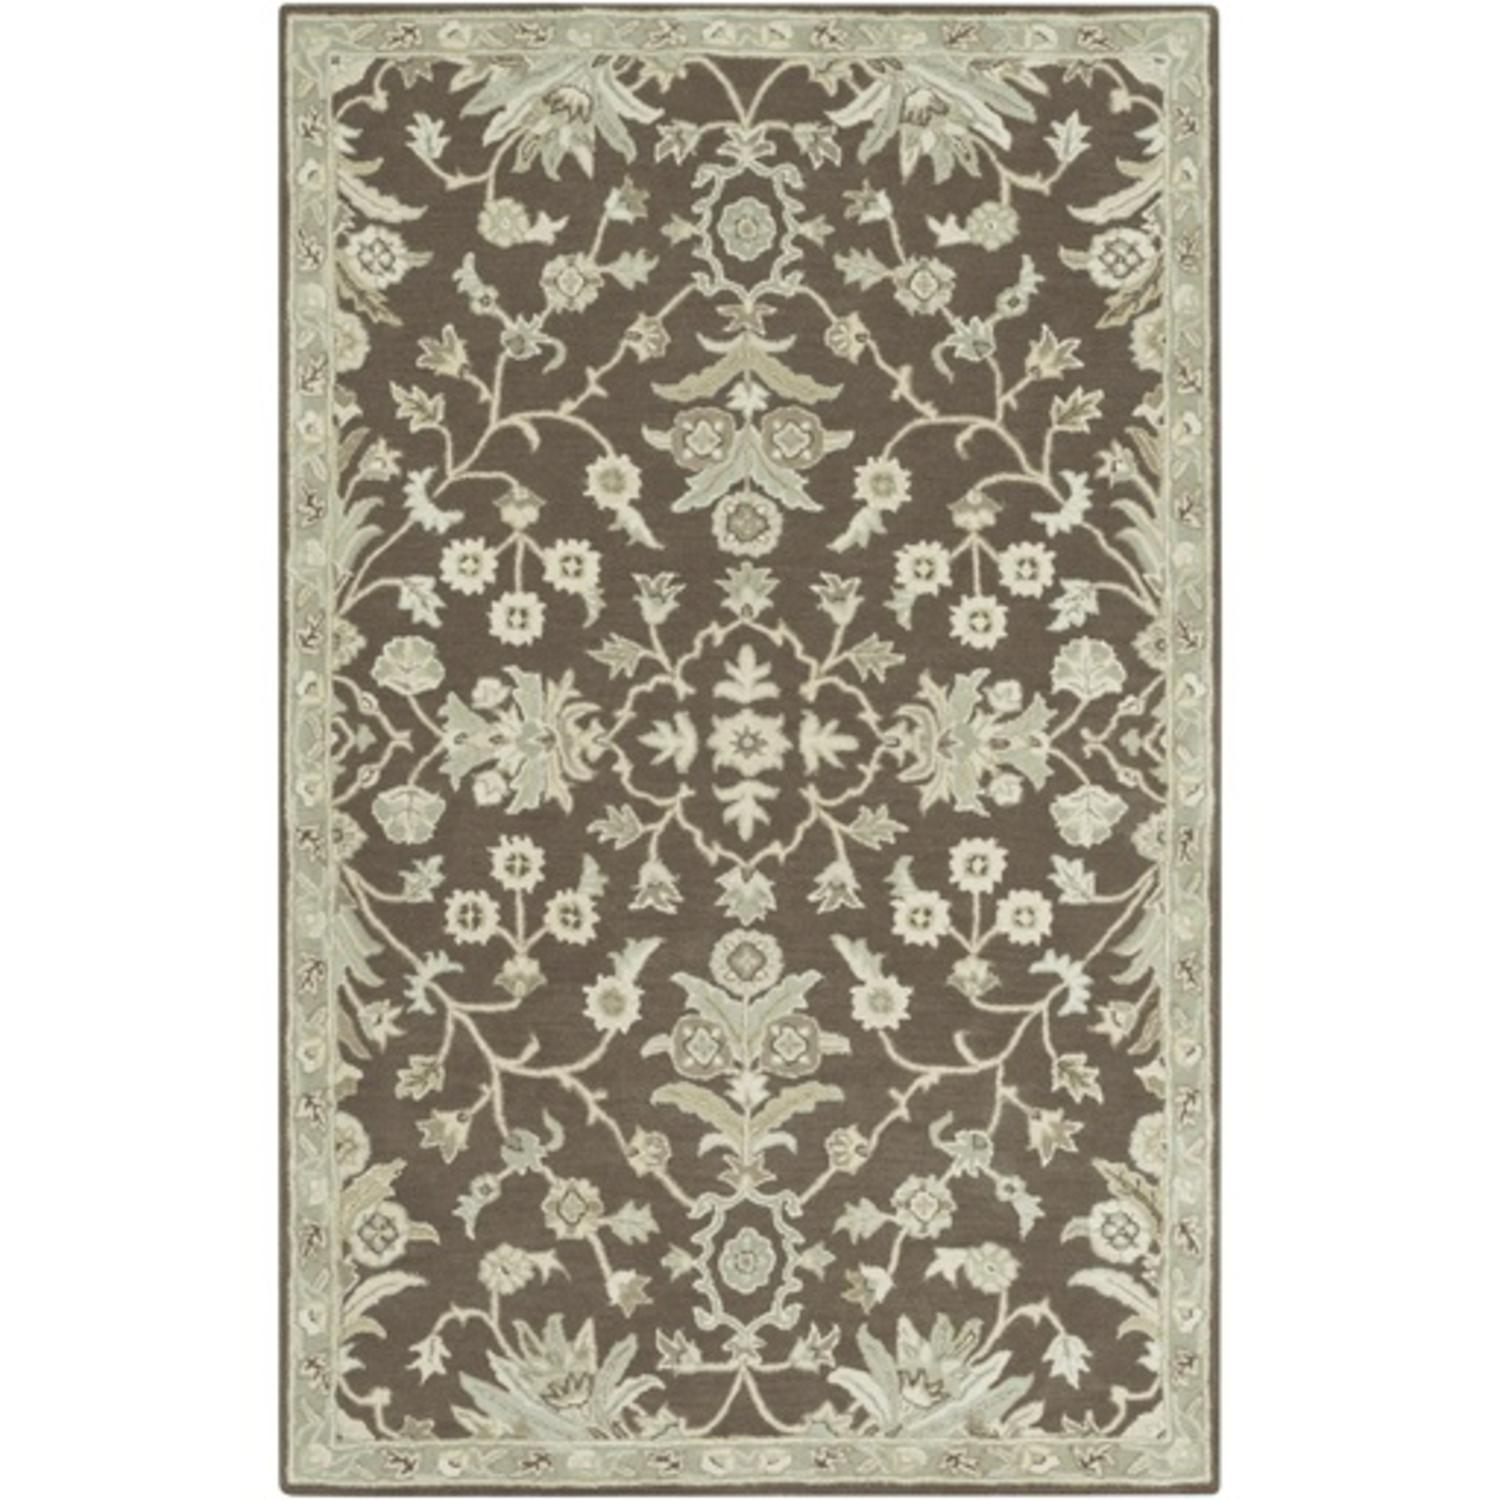 10' x 14' French Elegance Chocolate Brown, Gray and Cream Hand Tufted Wool Area Throw Rug